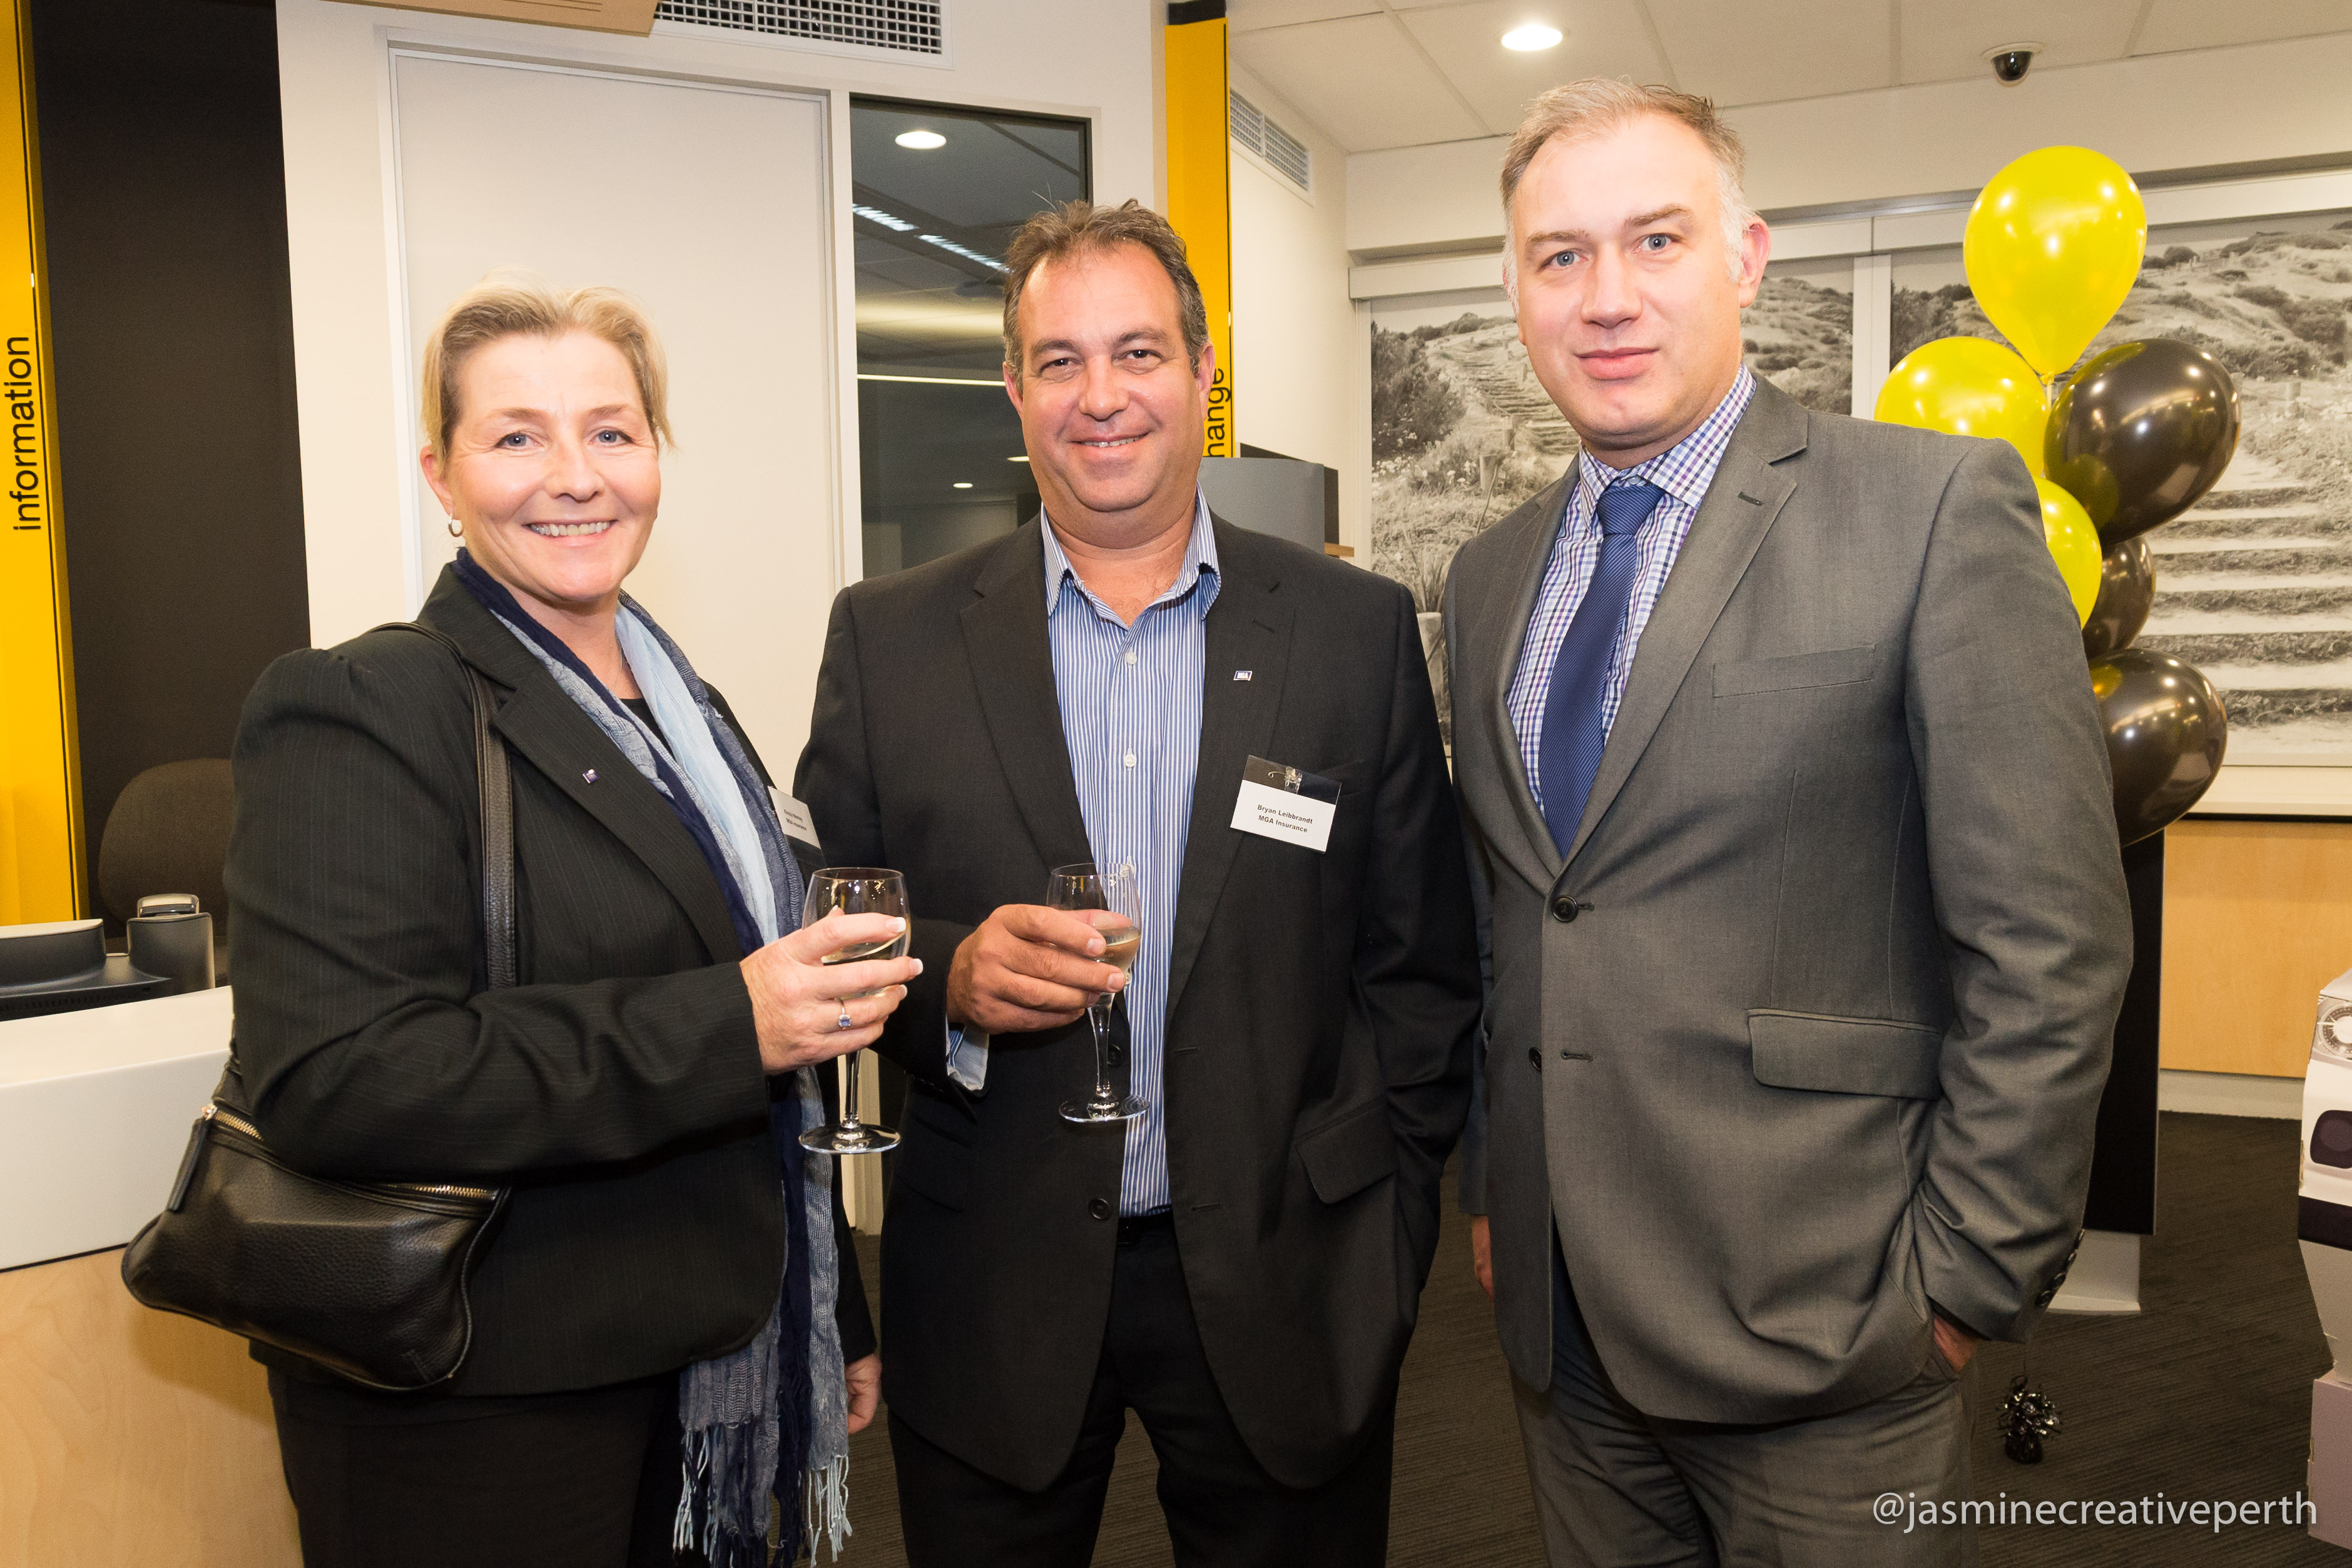 business_networking_event_photography_perth (2 of 3).jpg